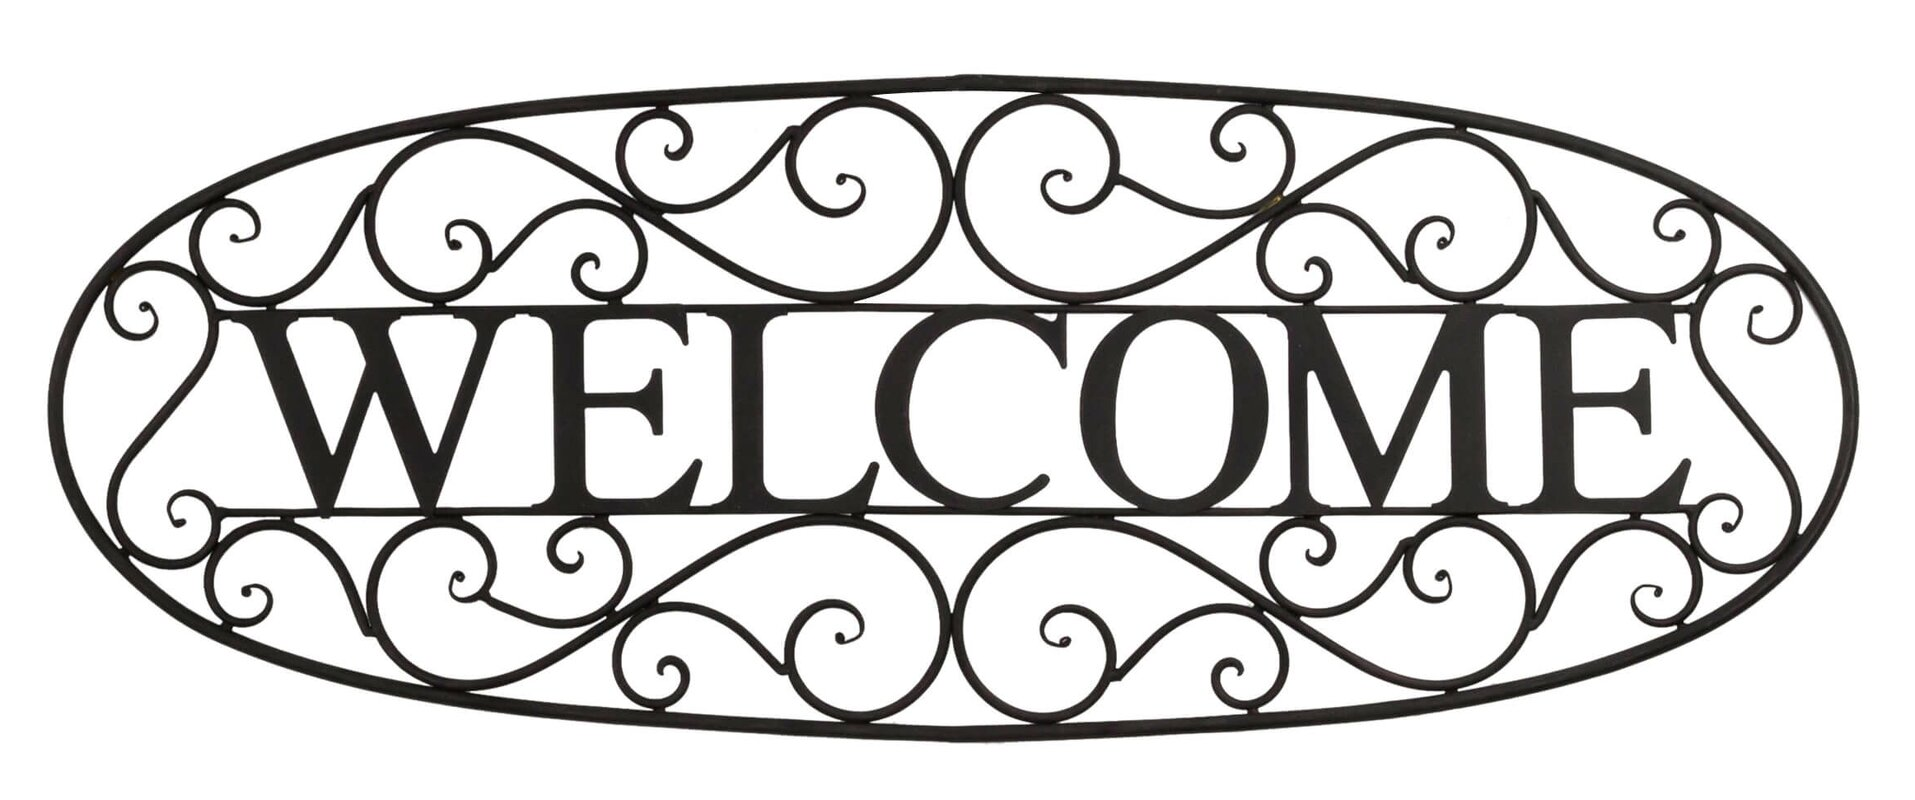 Black Wrought Iron Wall Decor Simple Bayaccents Welcome Sign Wrought Iron Wall Décor & Reviews  Wayfair Design Inspiration